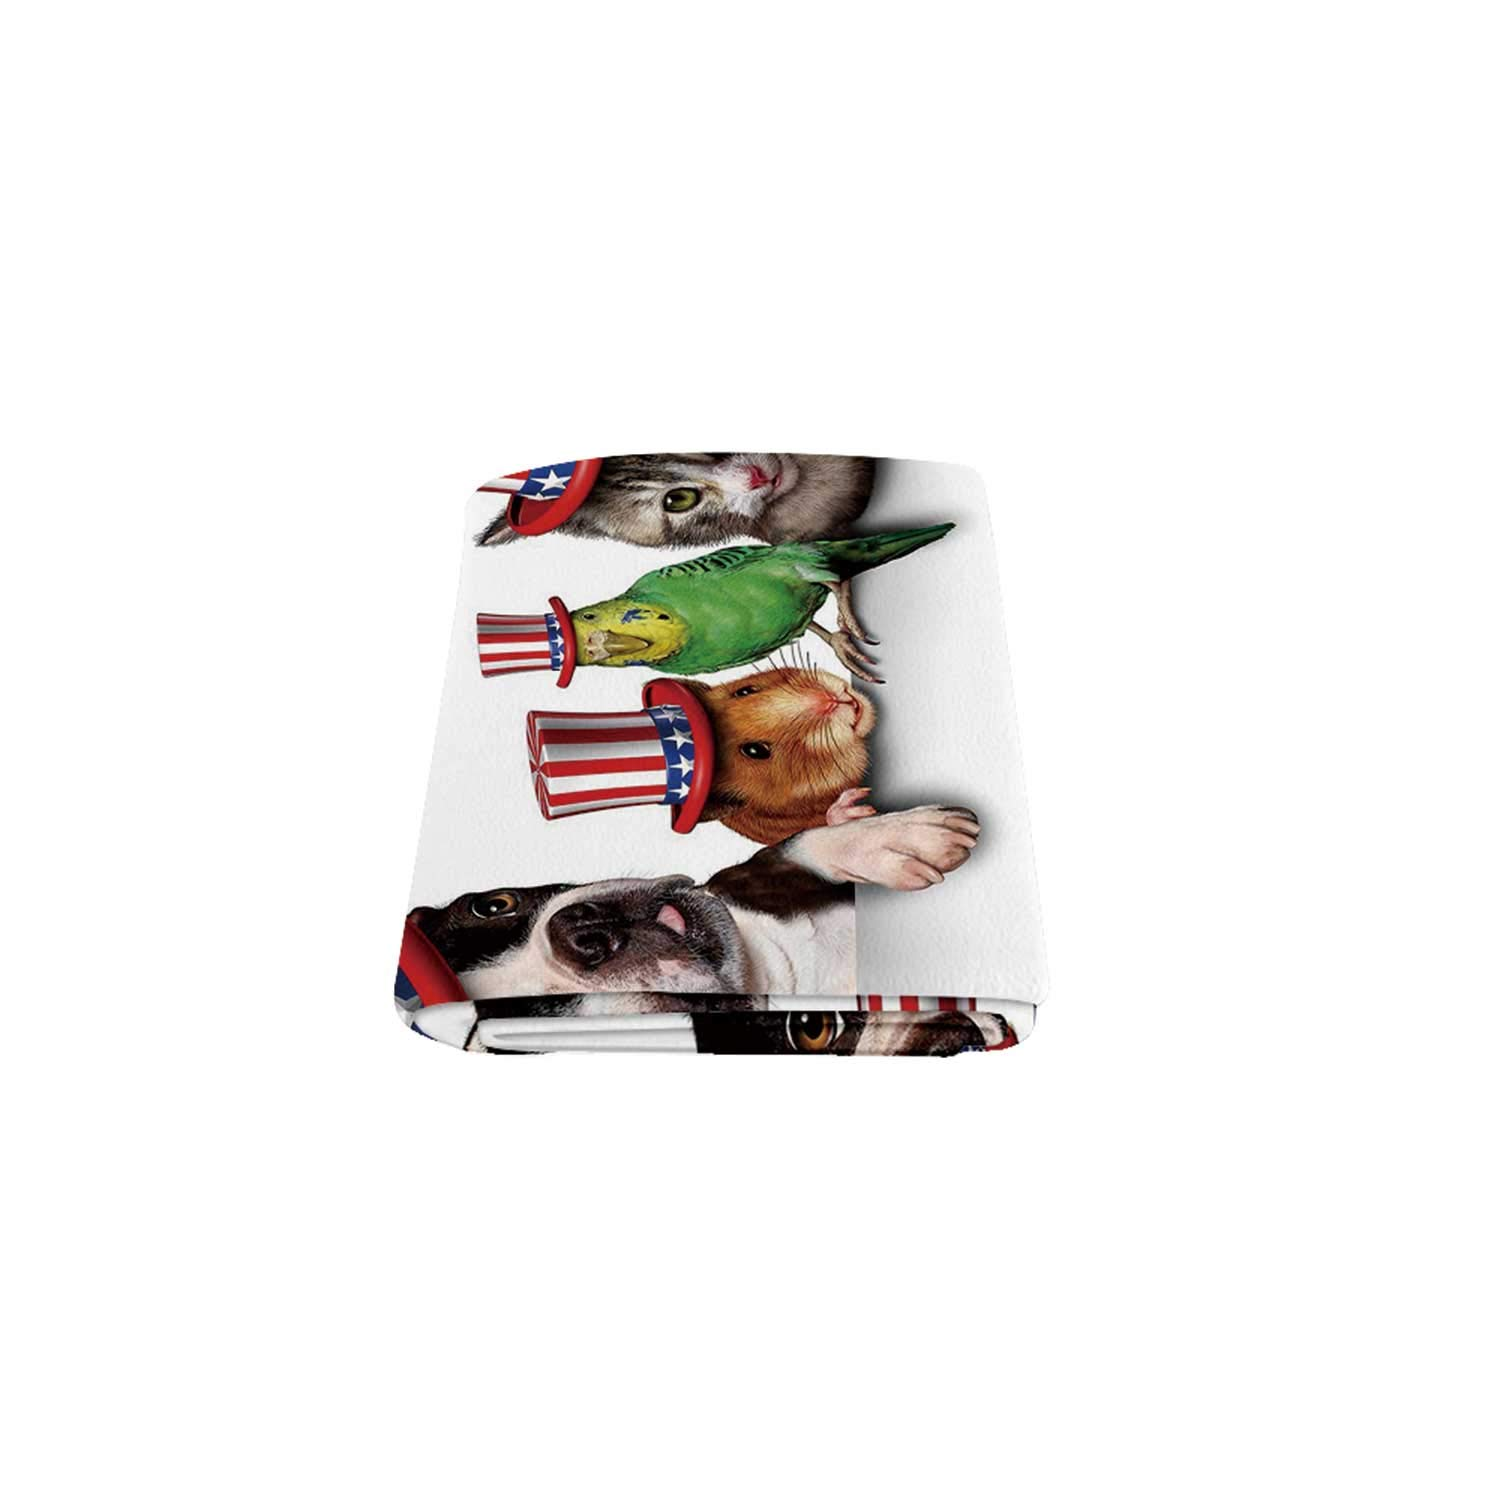 C COABALLA Fourth of July Warm Blanket,Cute Pet Animal Dog Cat Bird and Hamster with American Hat Celebration Image Decorative for Indoor,58'' x 80'' by C COABALLA